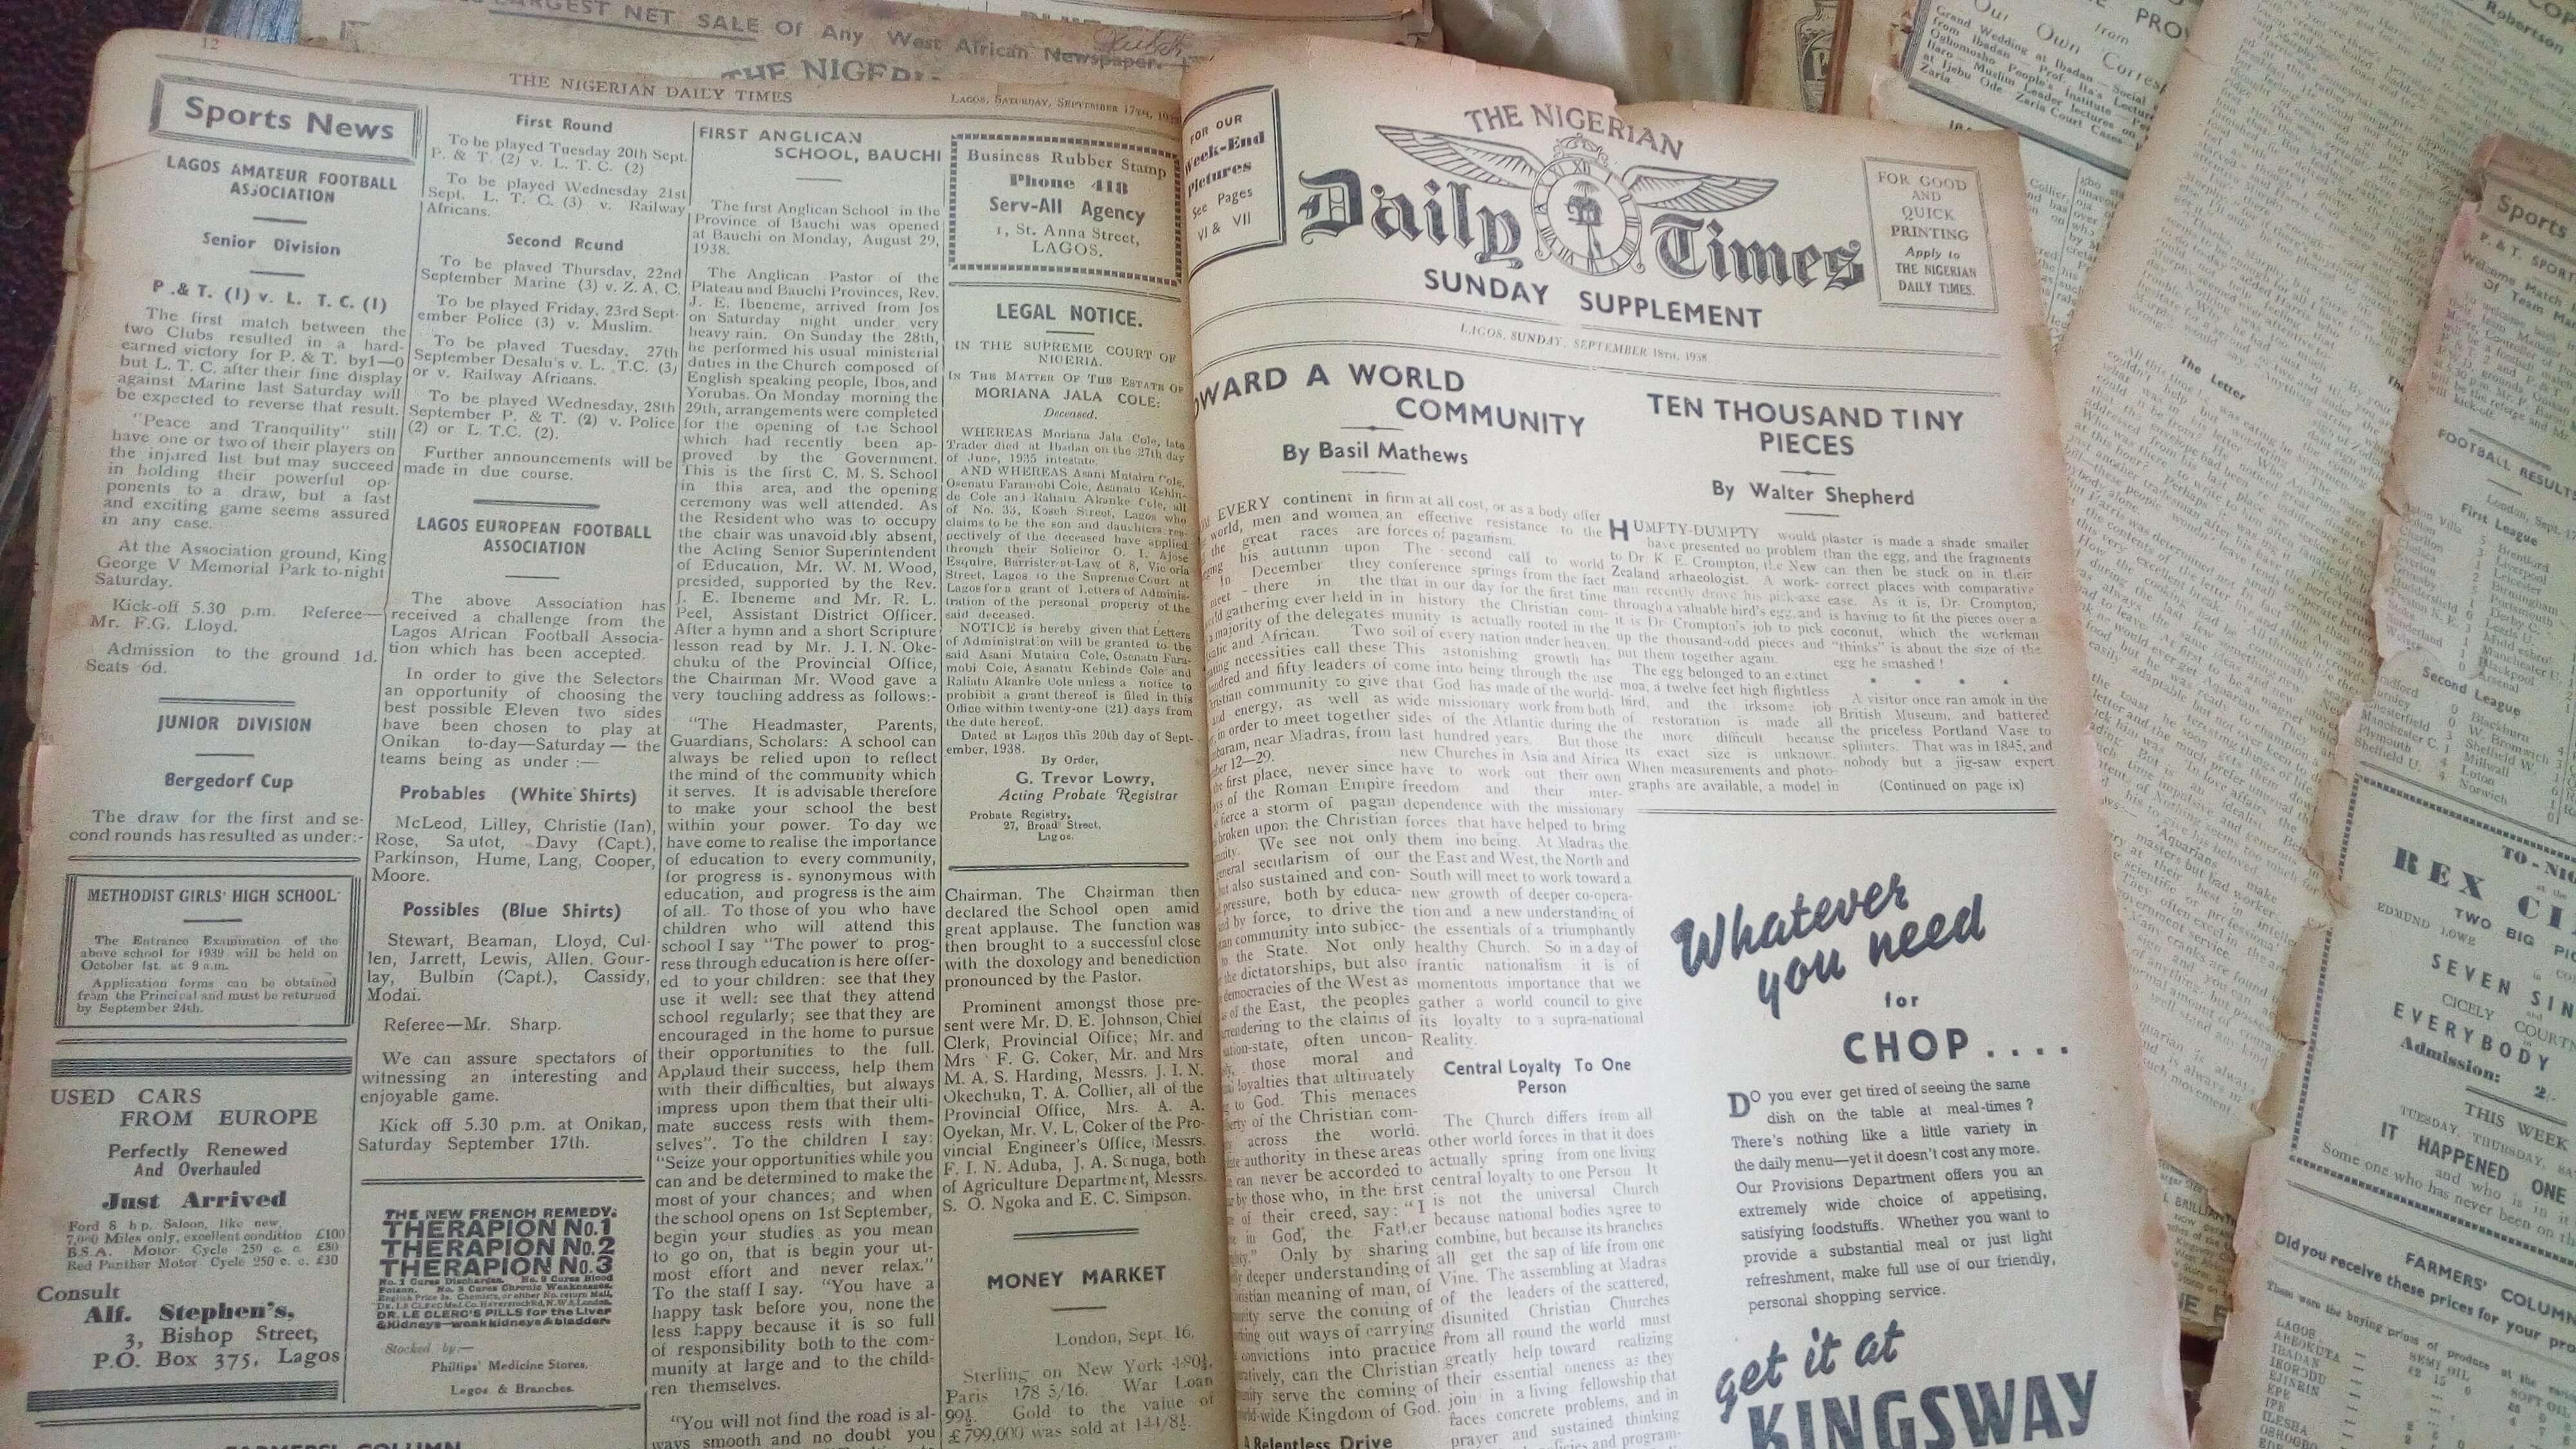 The Nigerian Daily Times of September 18th, 1938